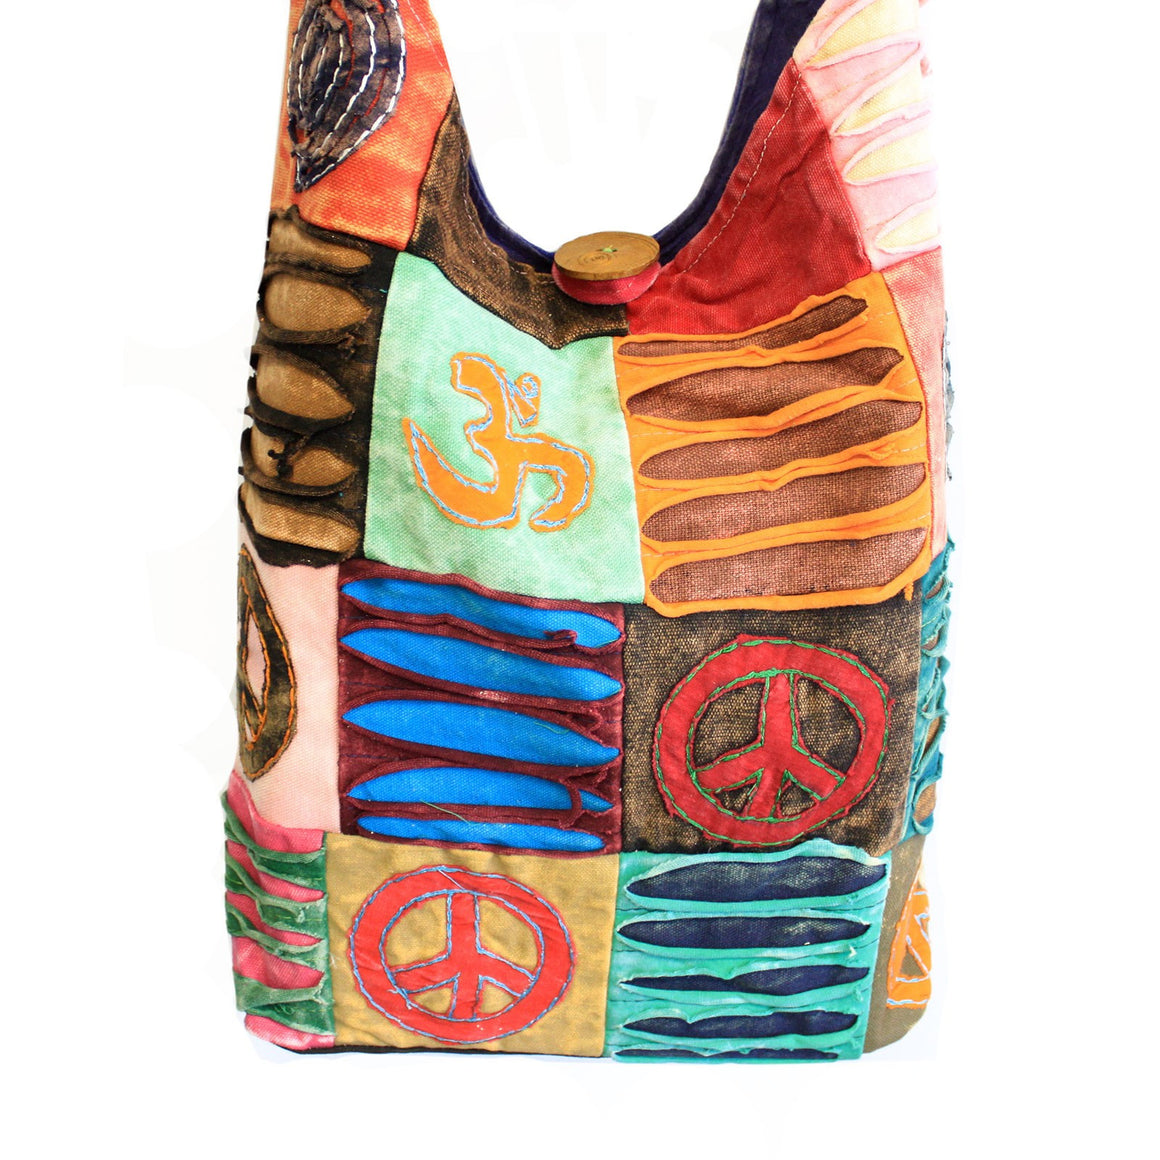 Bags, Classic Peace Sling Bags, Ethnic Bags, Gift, India, Indian, Indian Ethnic Peace Bags, Peace